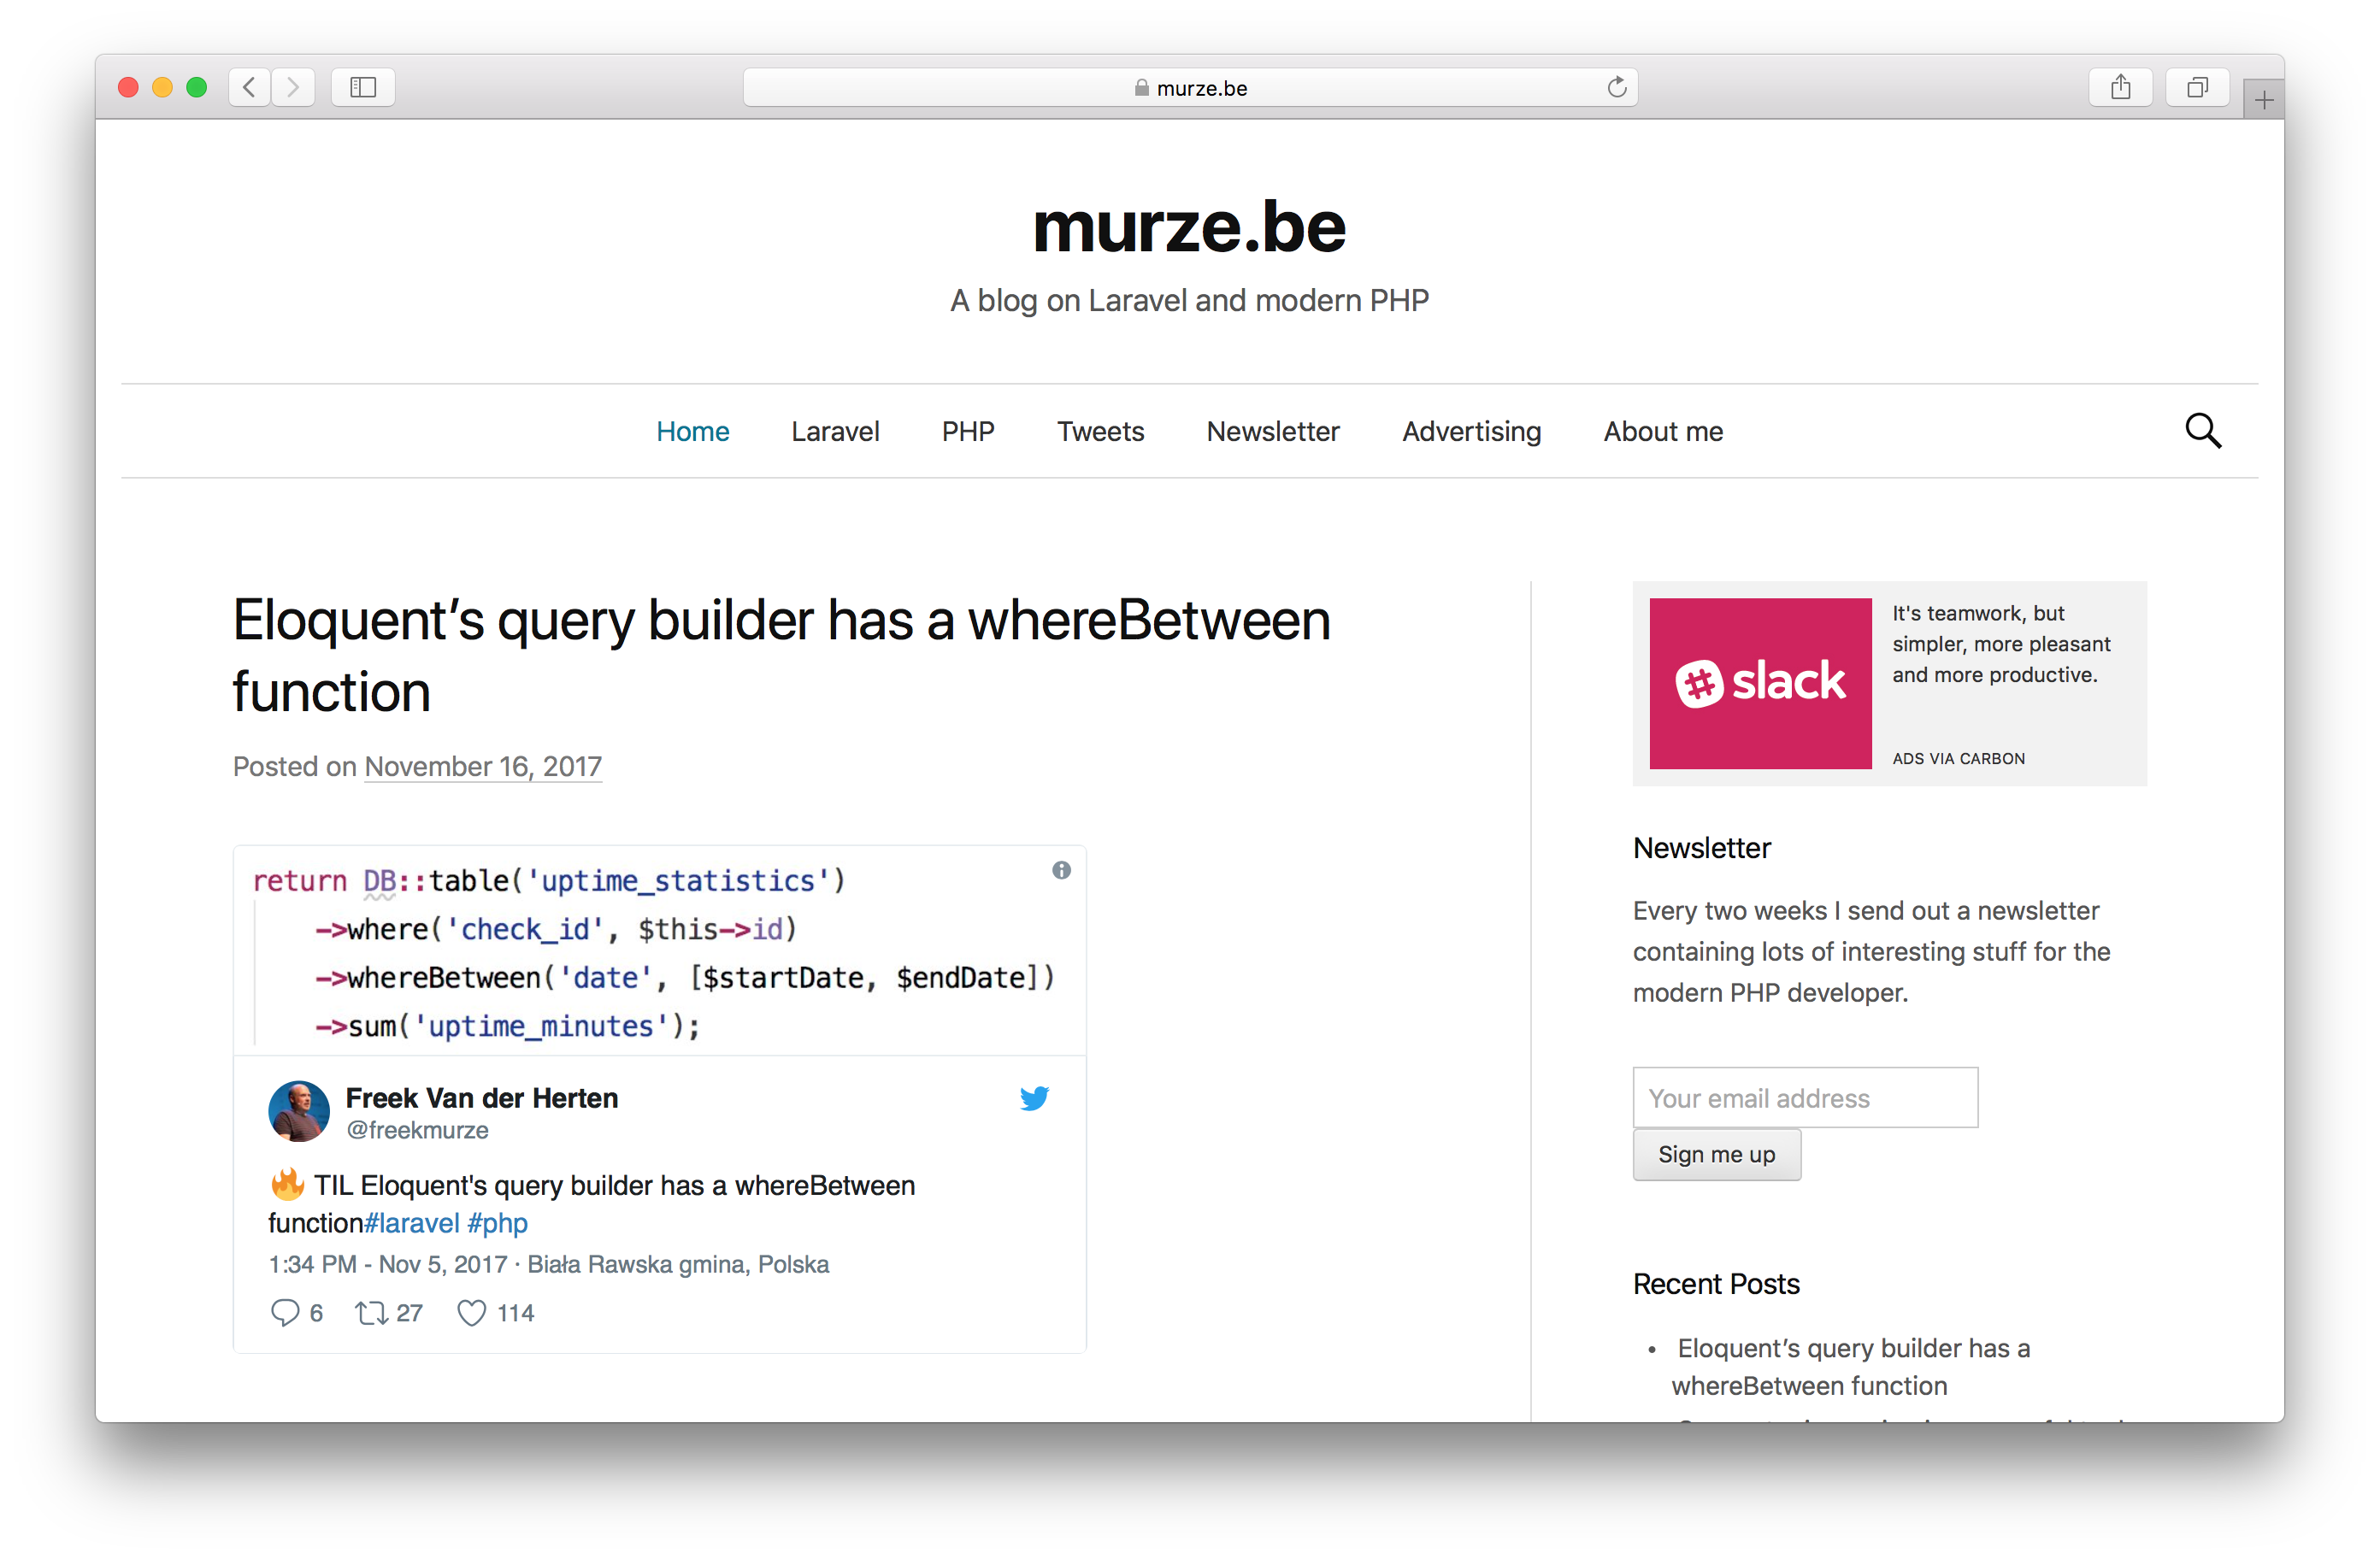 Screenshot of murze.be